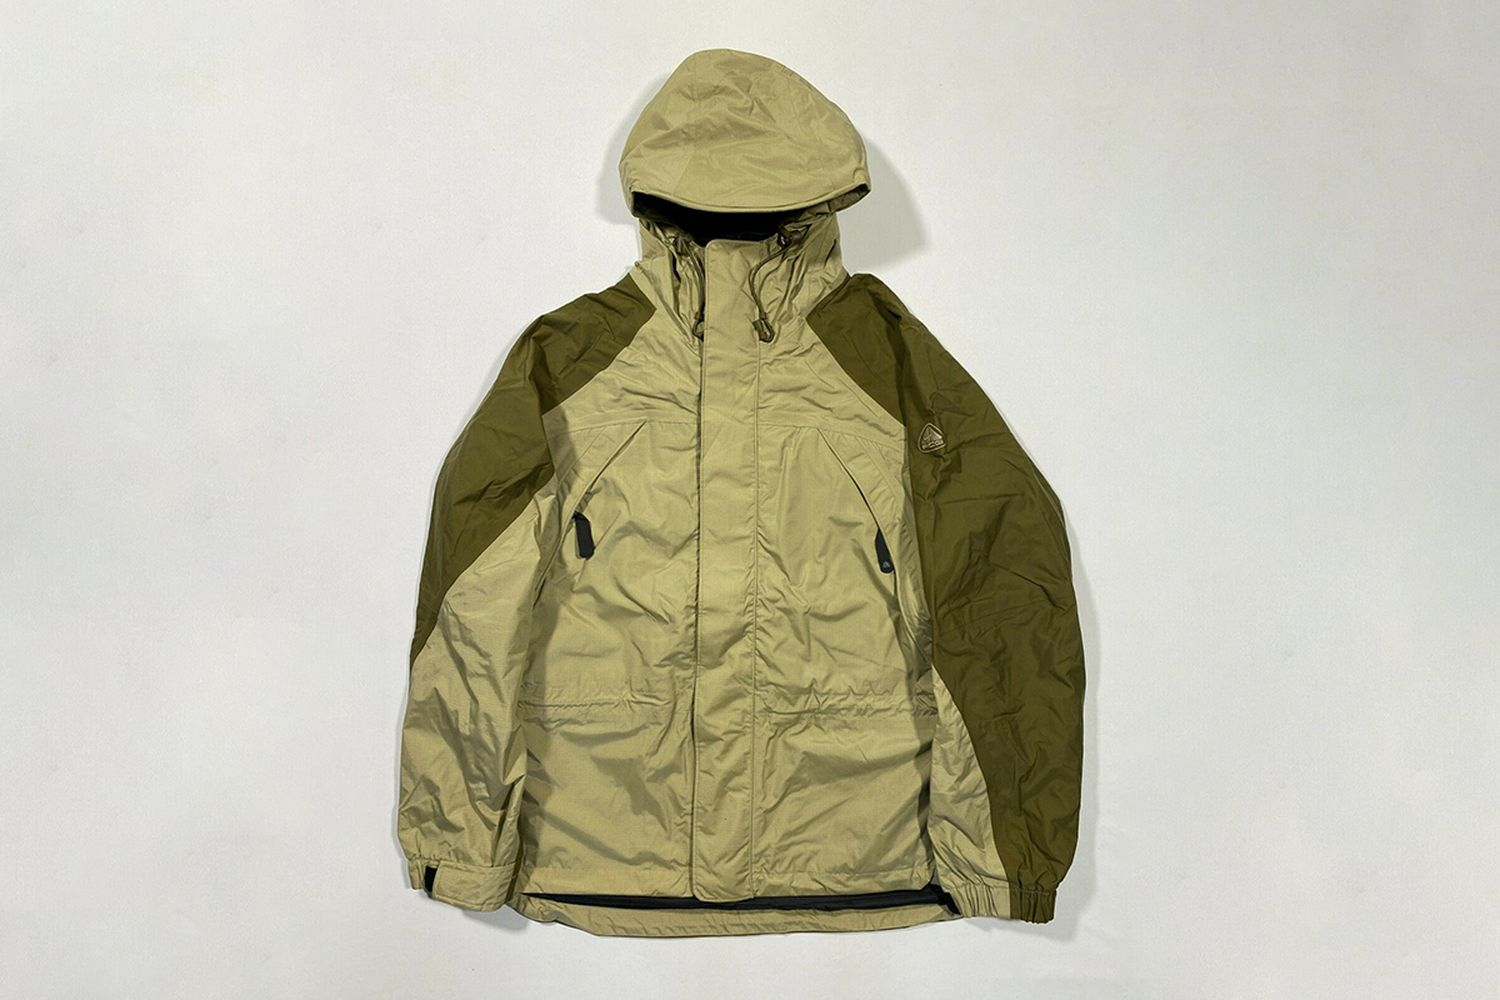 3 Outer Layer Rare Vintage 90s Jacket